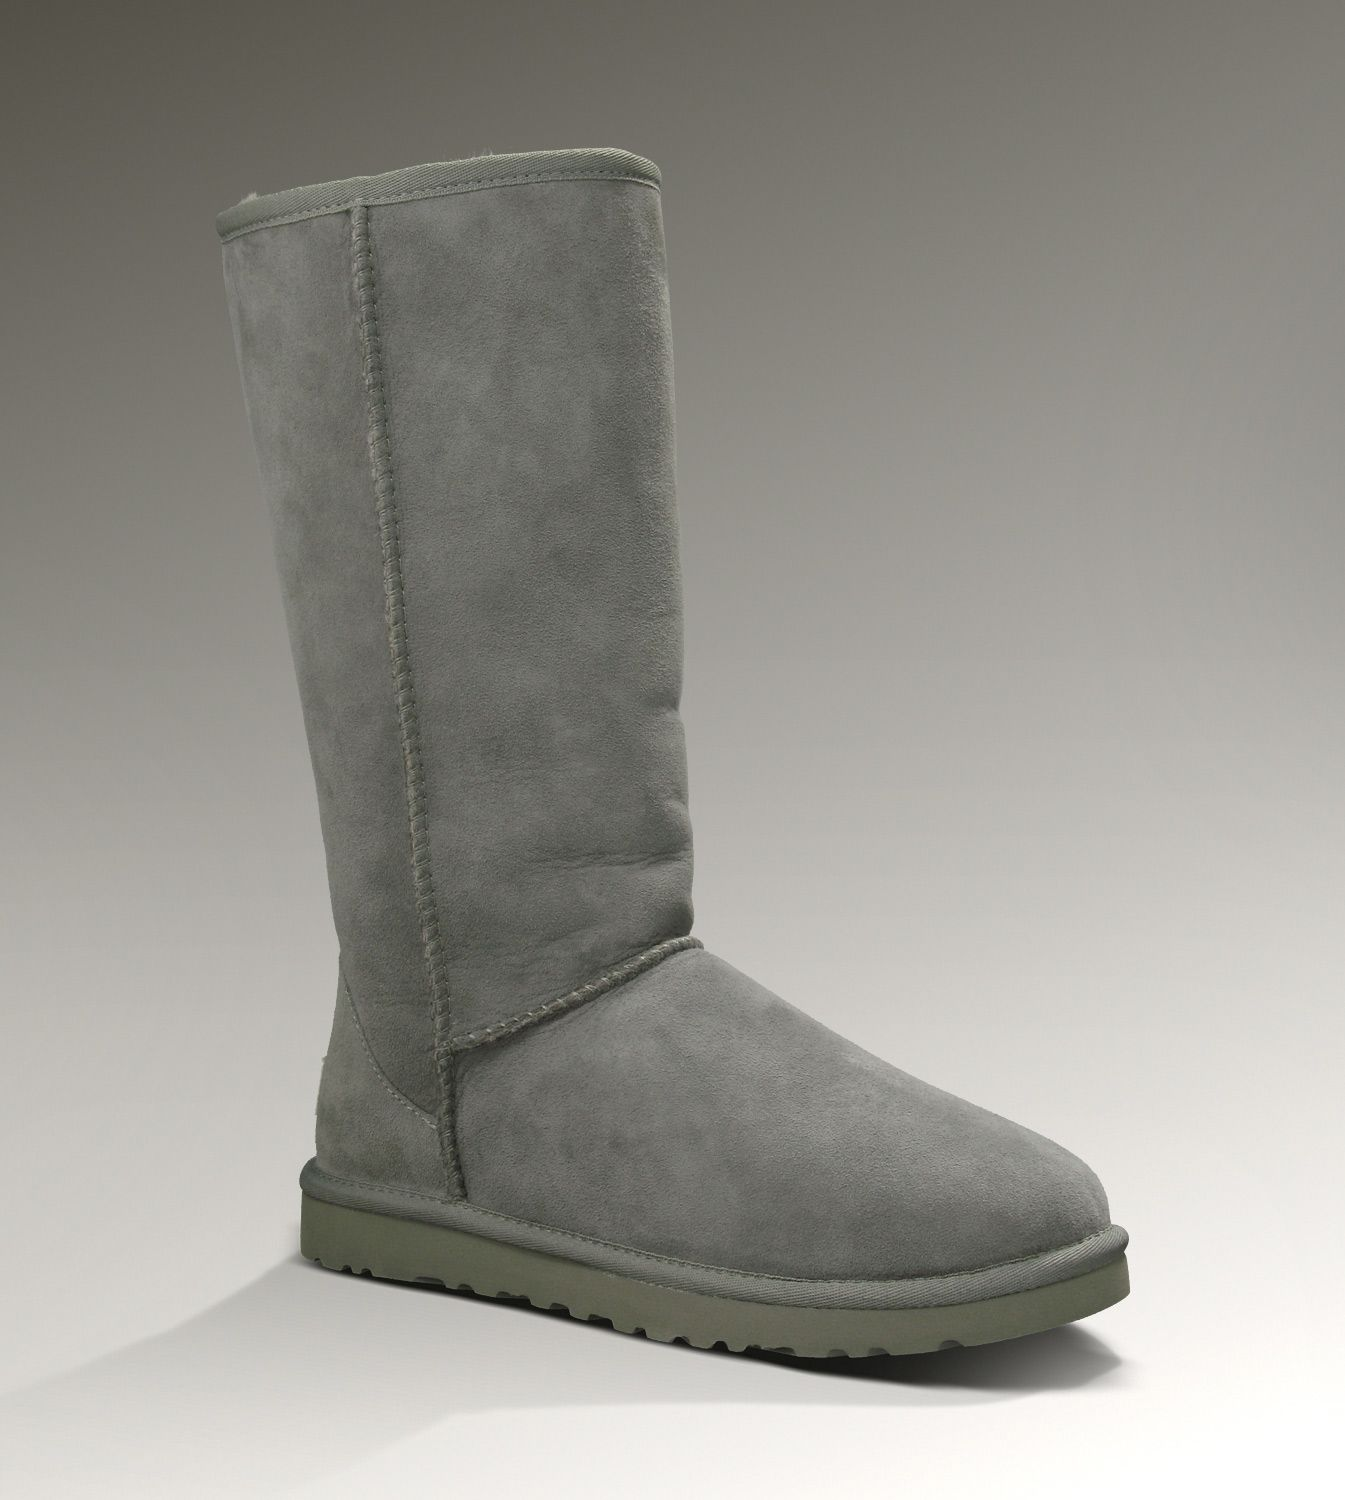 UGG Womens Classic Tall Grey $118 : UGG Outlet, Cheap UGG Boots Outlet Online, 50%-70% Off!